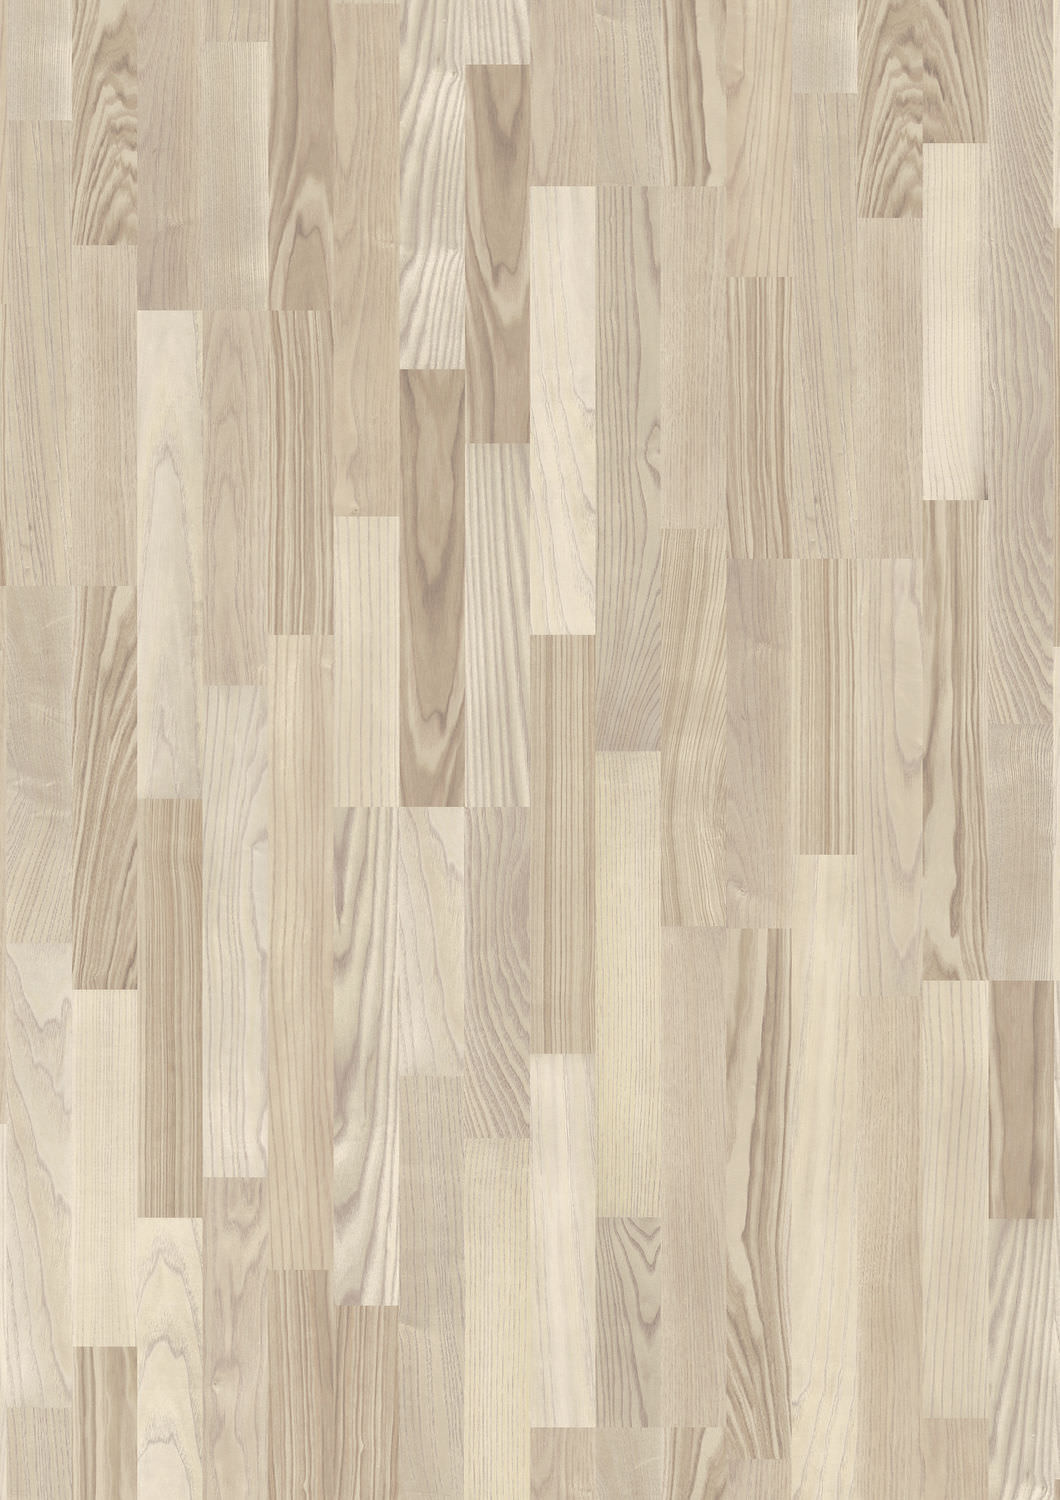 Hdf Laminate Flooring Fit Wood Look For Public Buildings Nordic Ash L0201 01793